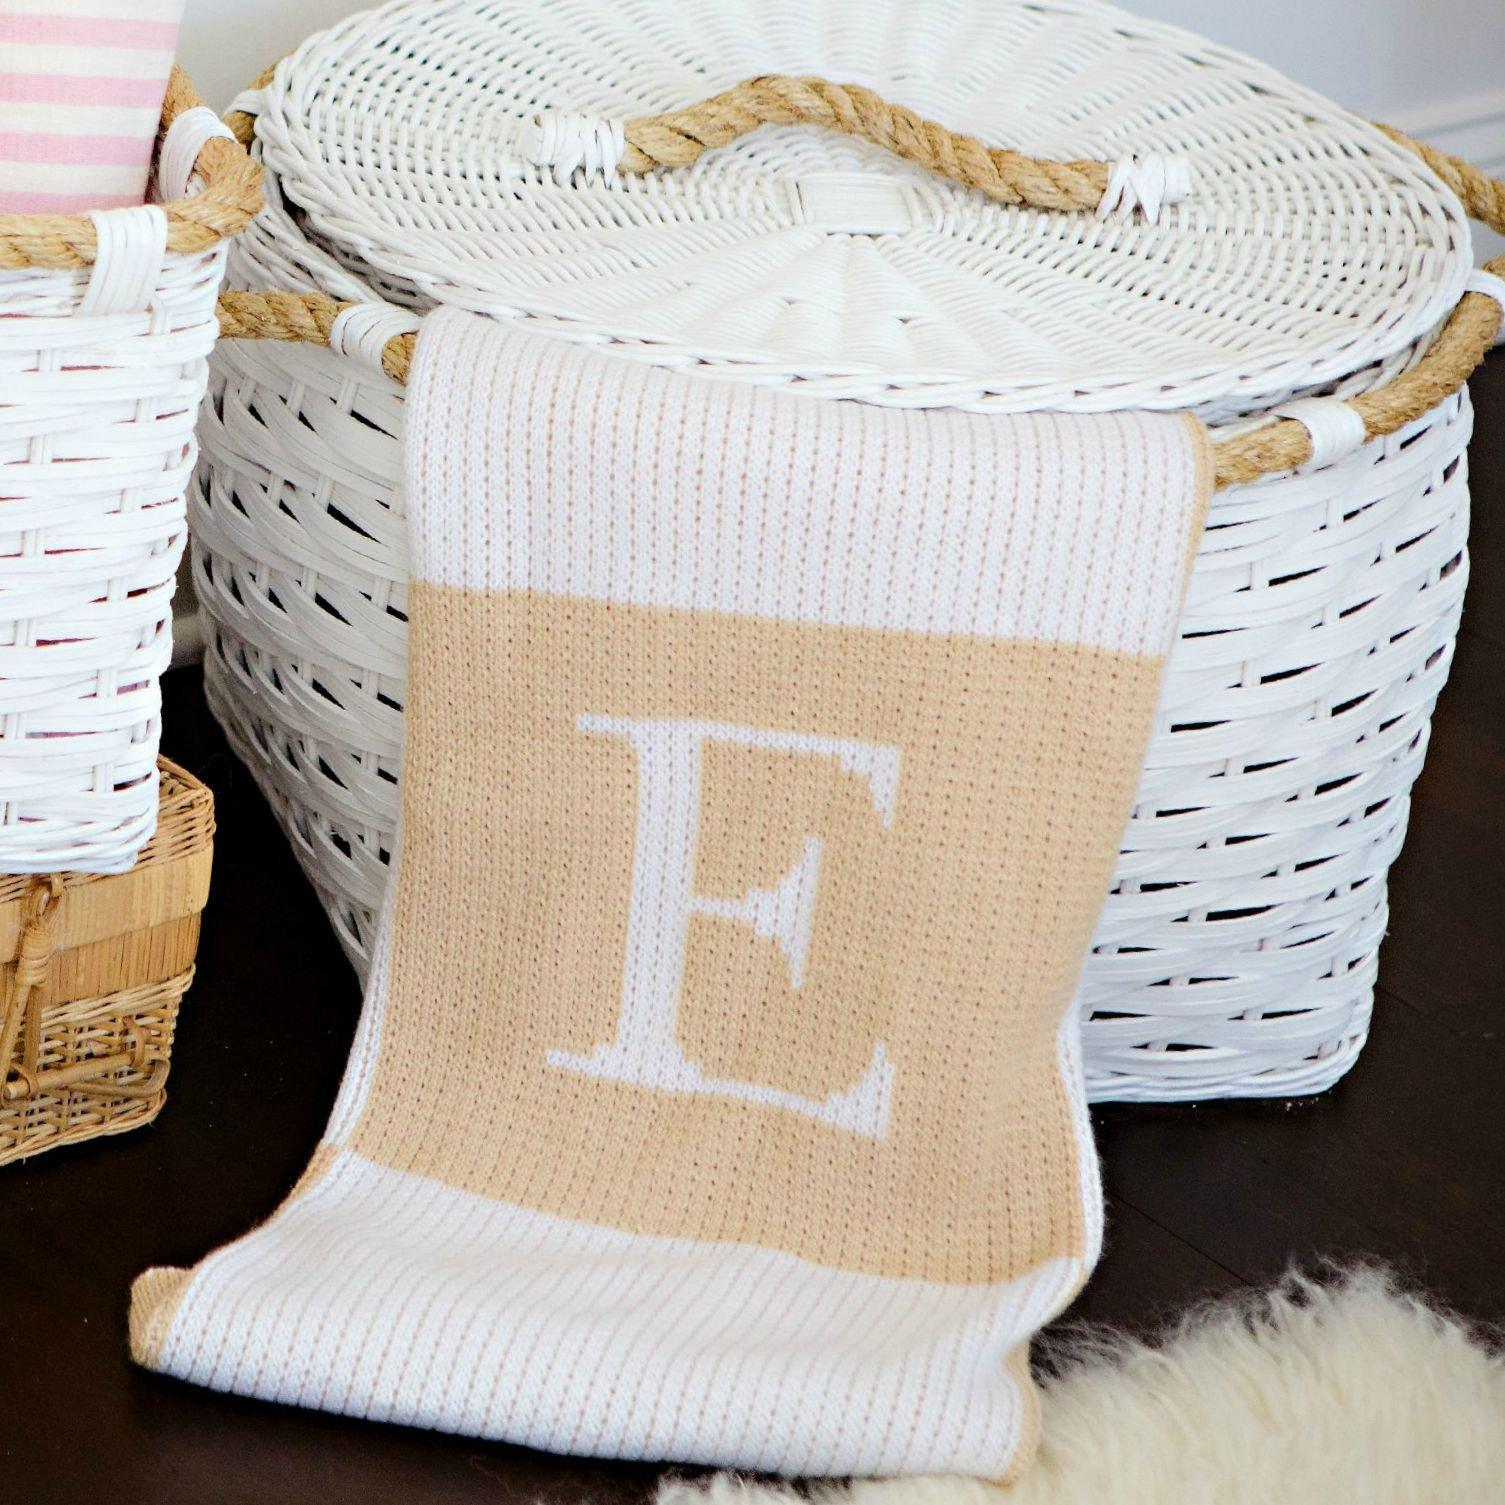 Initial and Blocks Blanket - Project Nursery